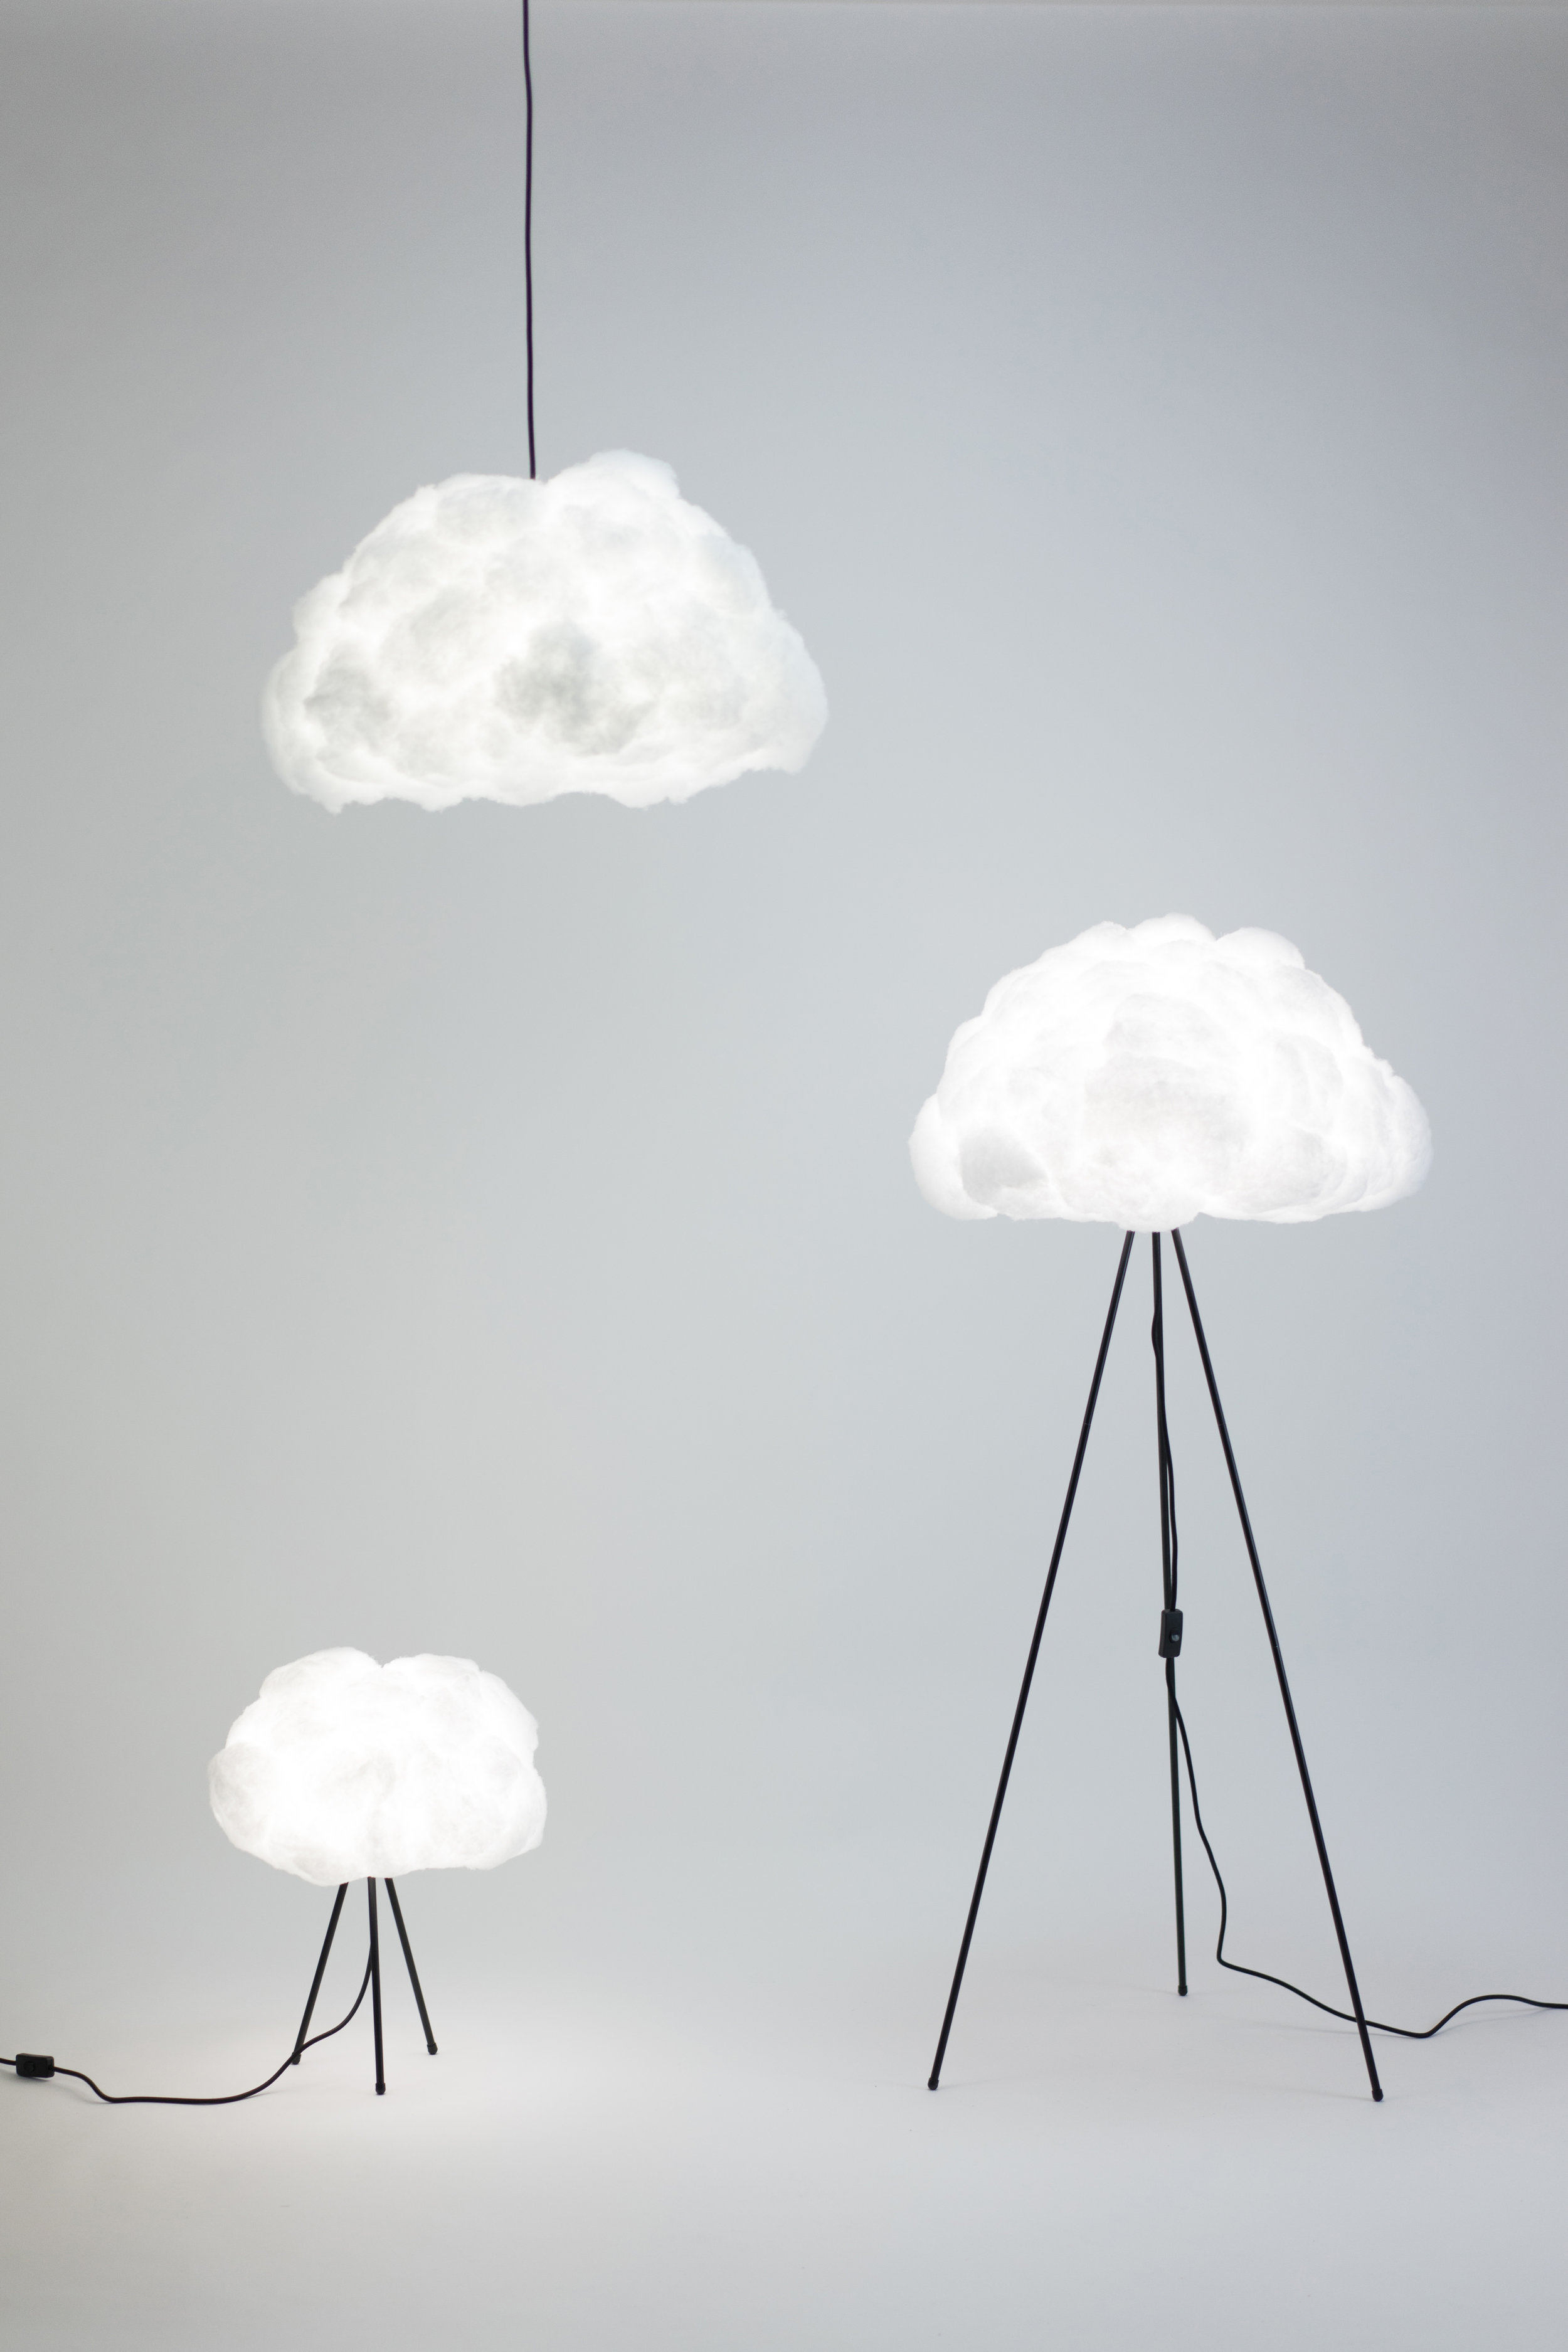 jun 9 lighting clouds lamp shade with bulb richard clarkson comment - Cloud Lamp Diy